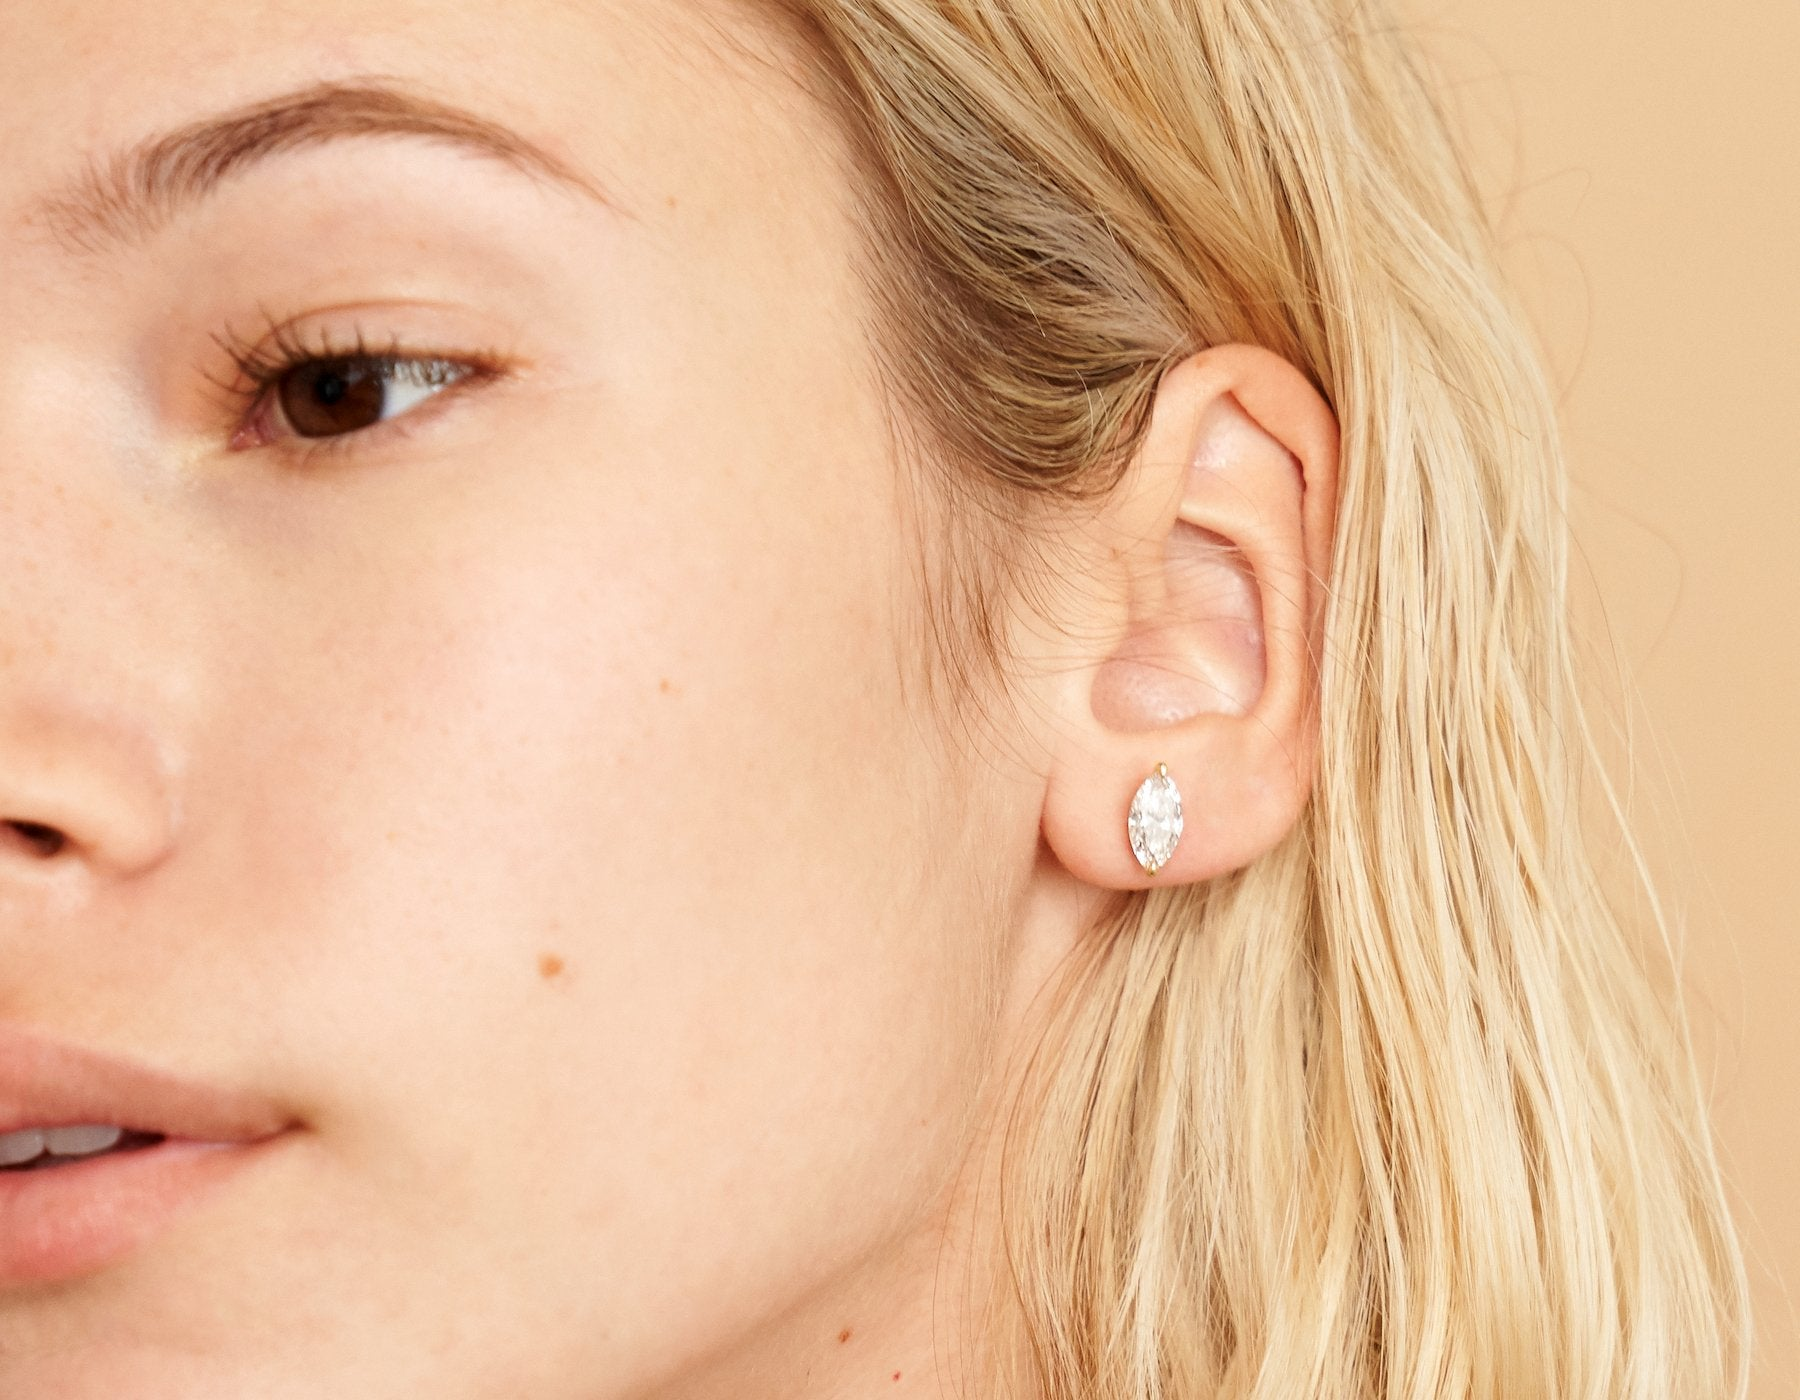 Model wearing Vrai 14K solid gold solitaire marquise diamond studs earrings 1ct minimalist delicate, 14K Yellow Gold